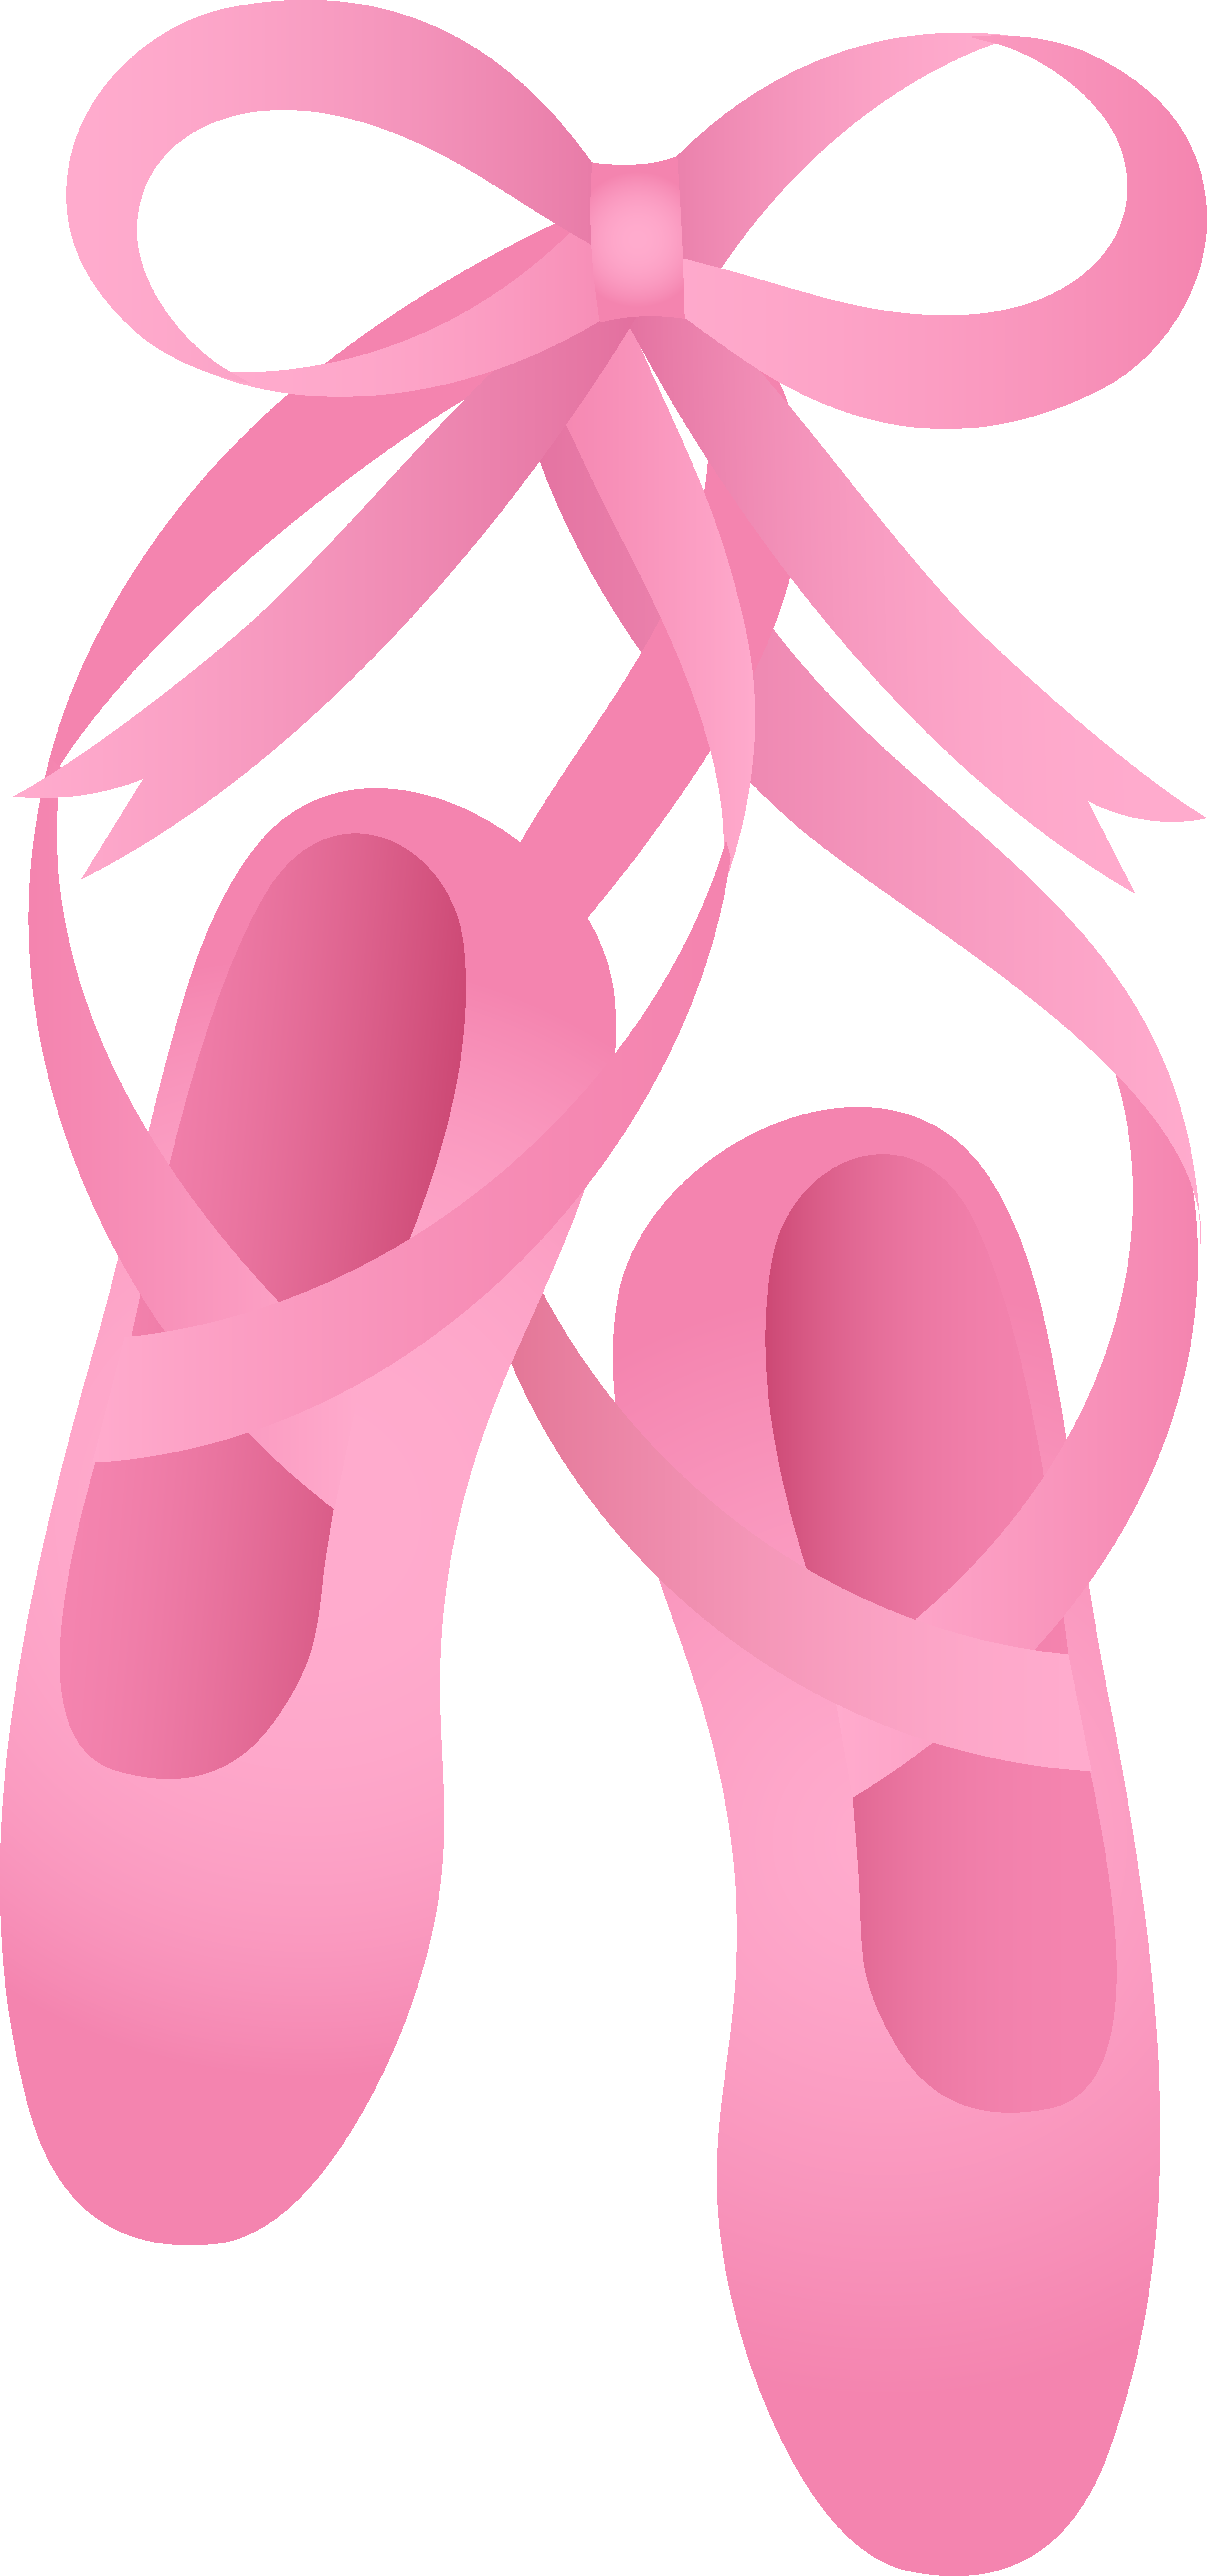 Pink Ballet Slippers - Ballet Shoes PNG HD